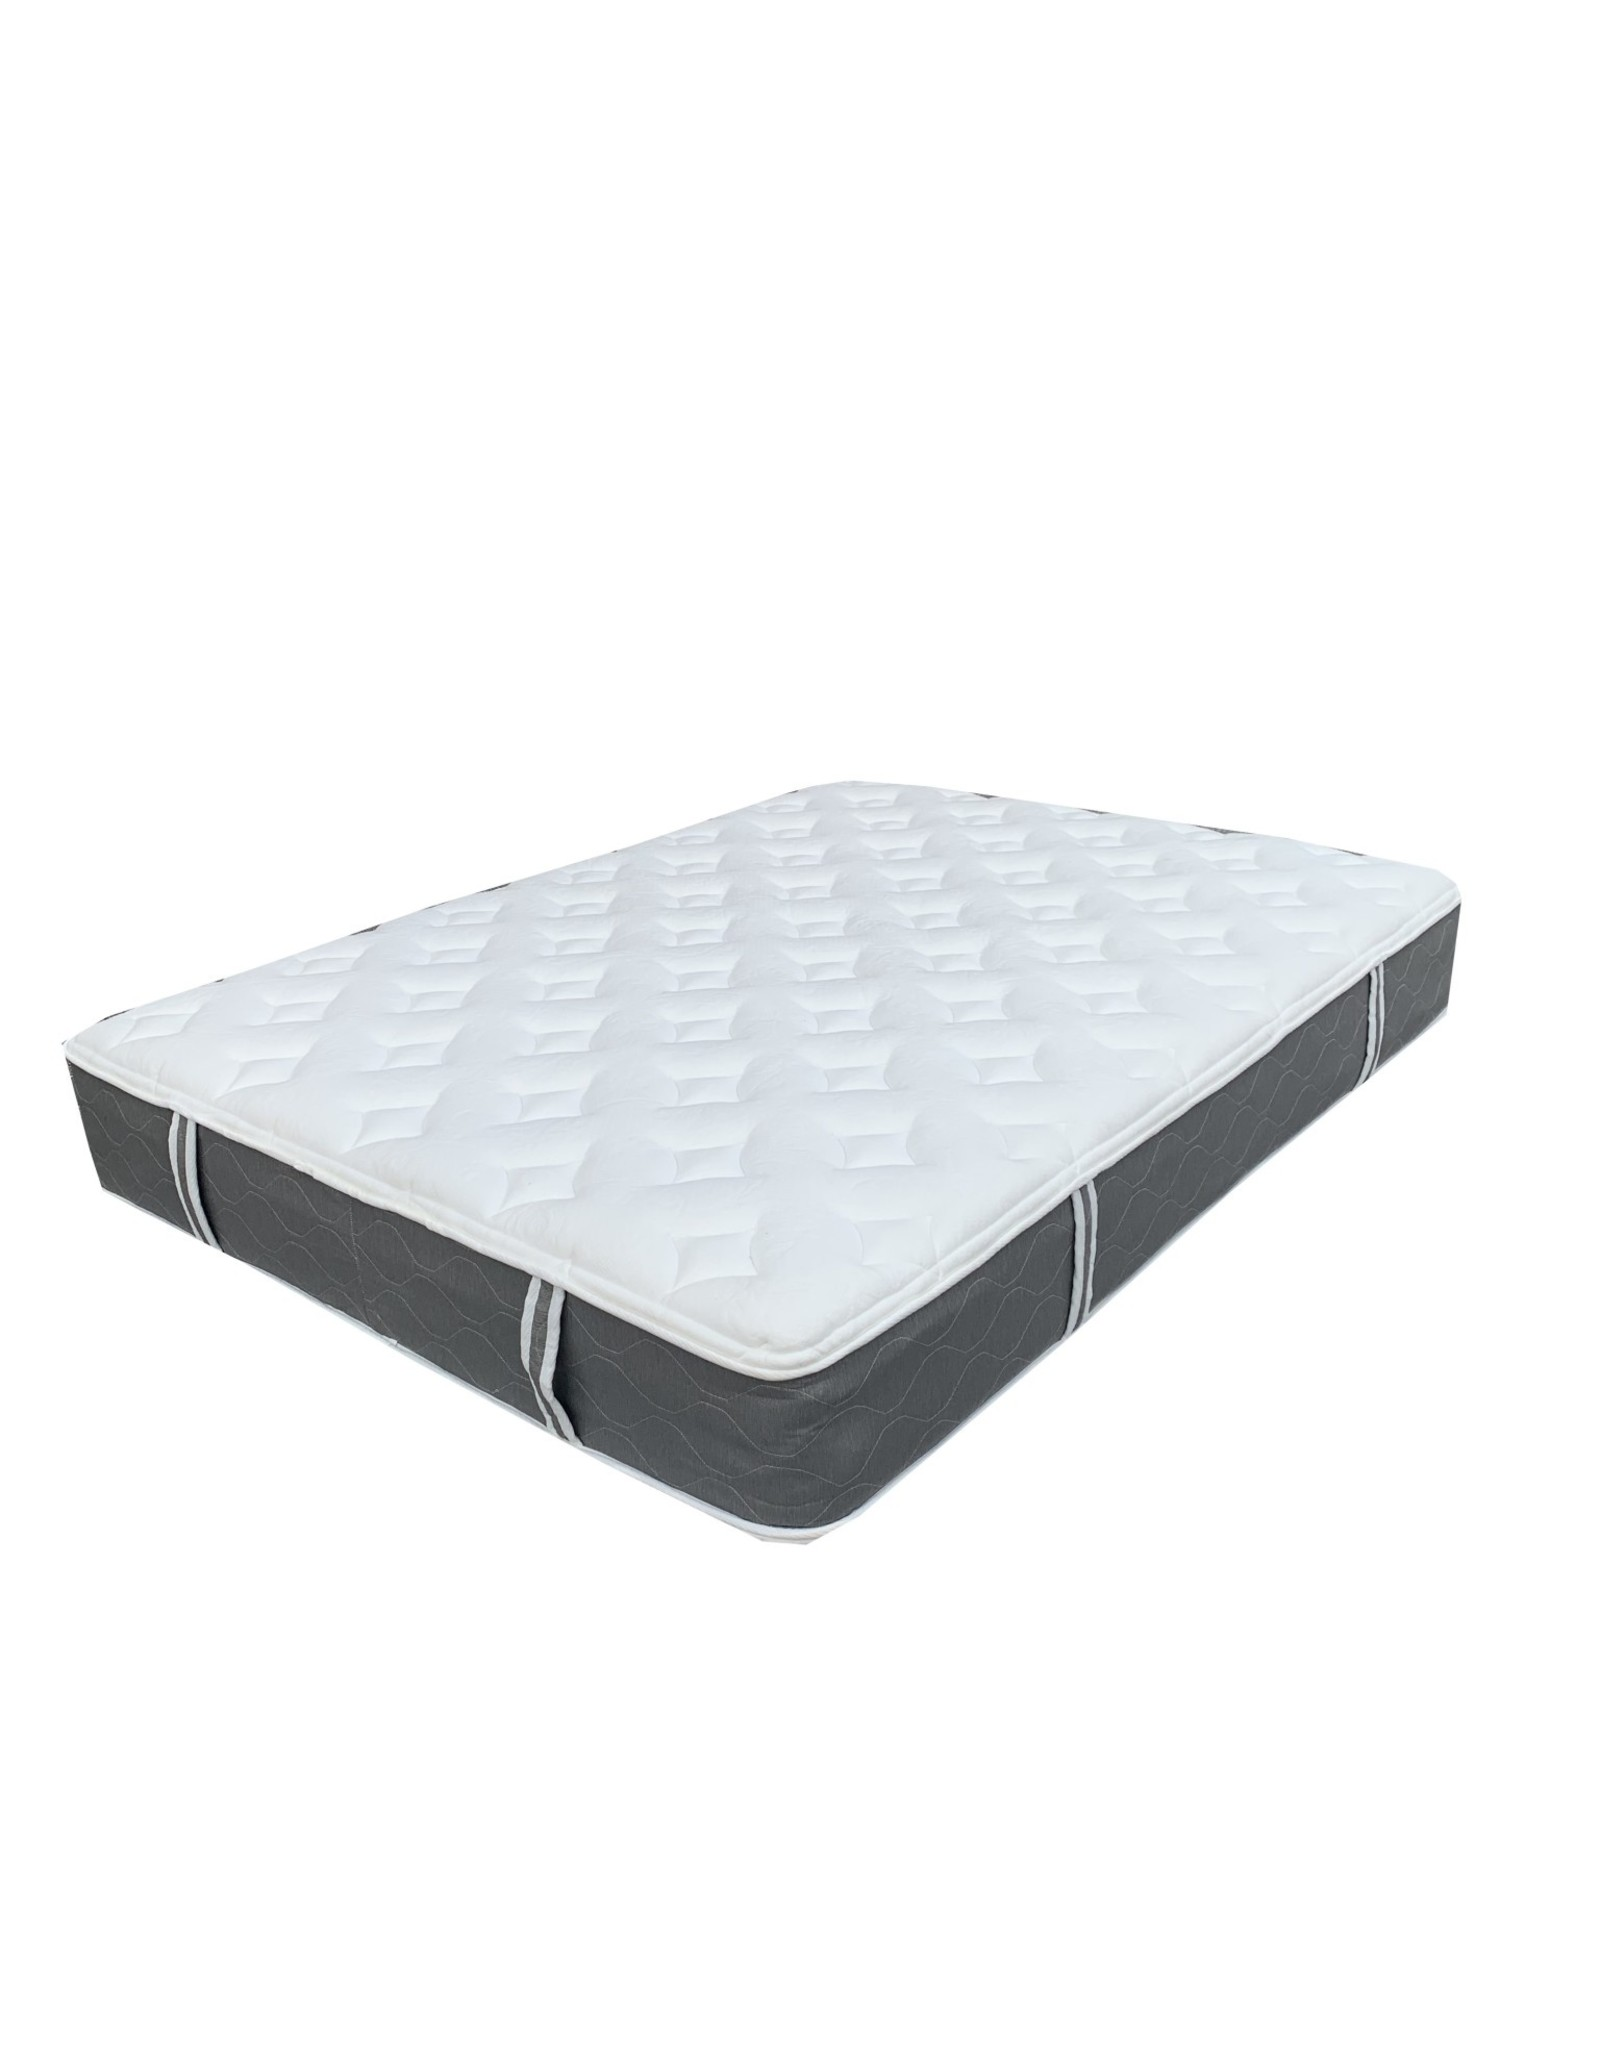 Magic Comfort RV Mattress